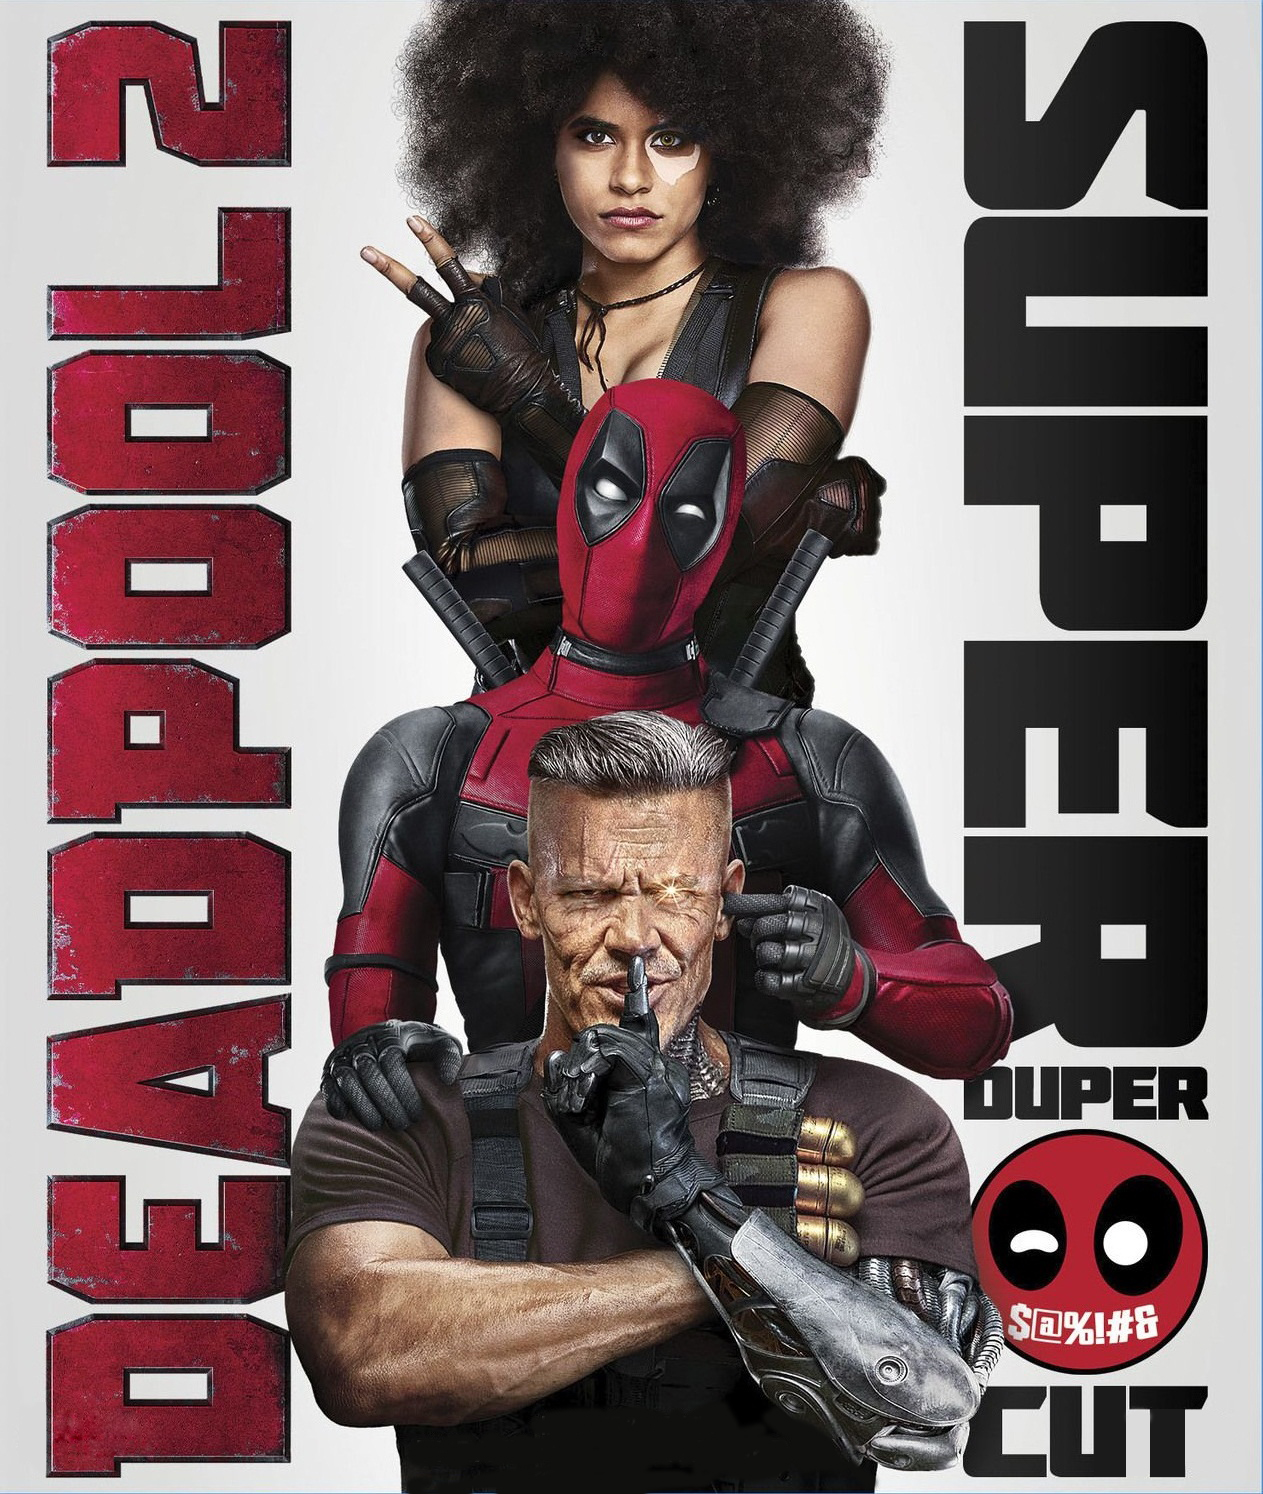 Deadpool 2 [Super Duper Cut] [2018] [DVDR] [NTSC] [Latino 5.1]